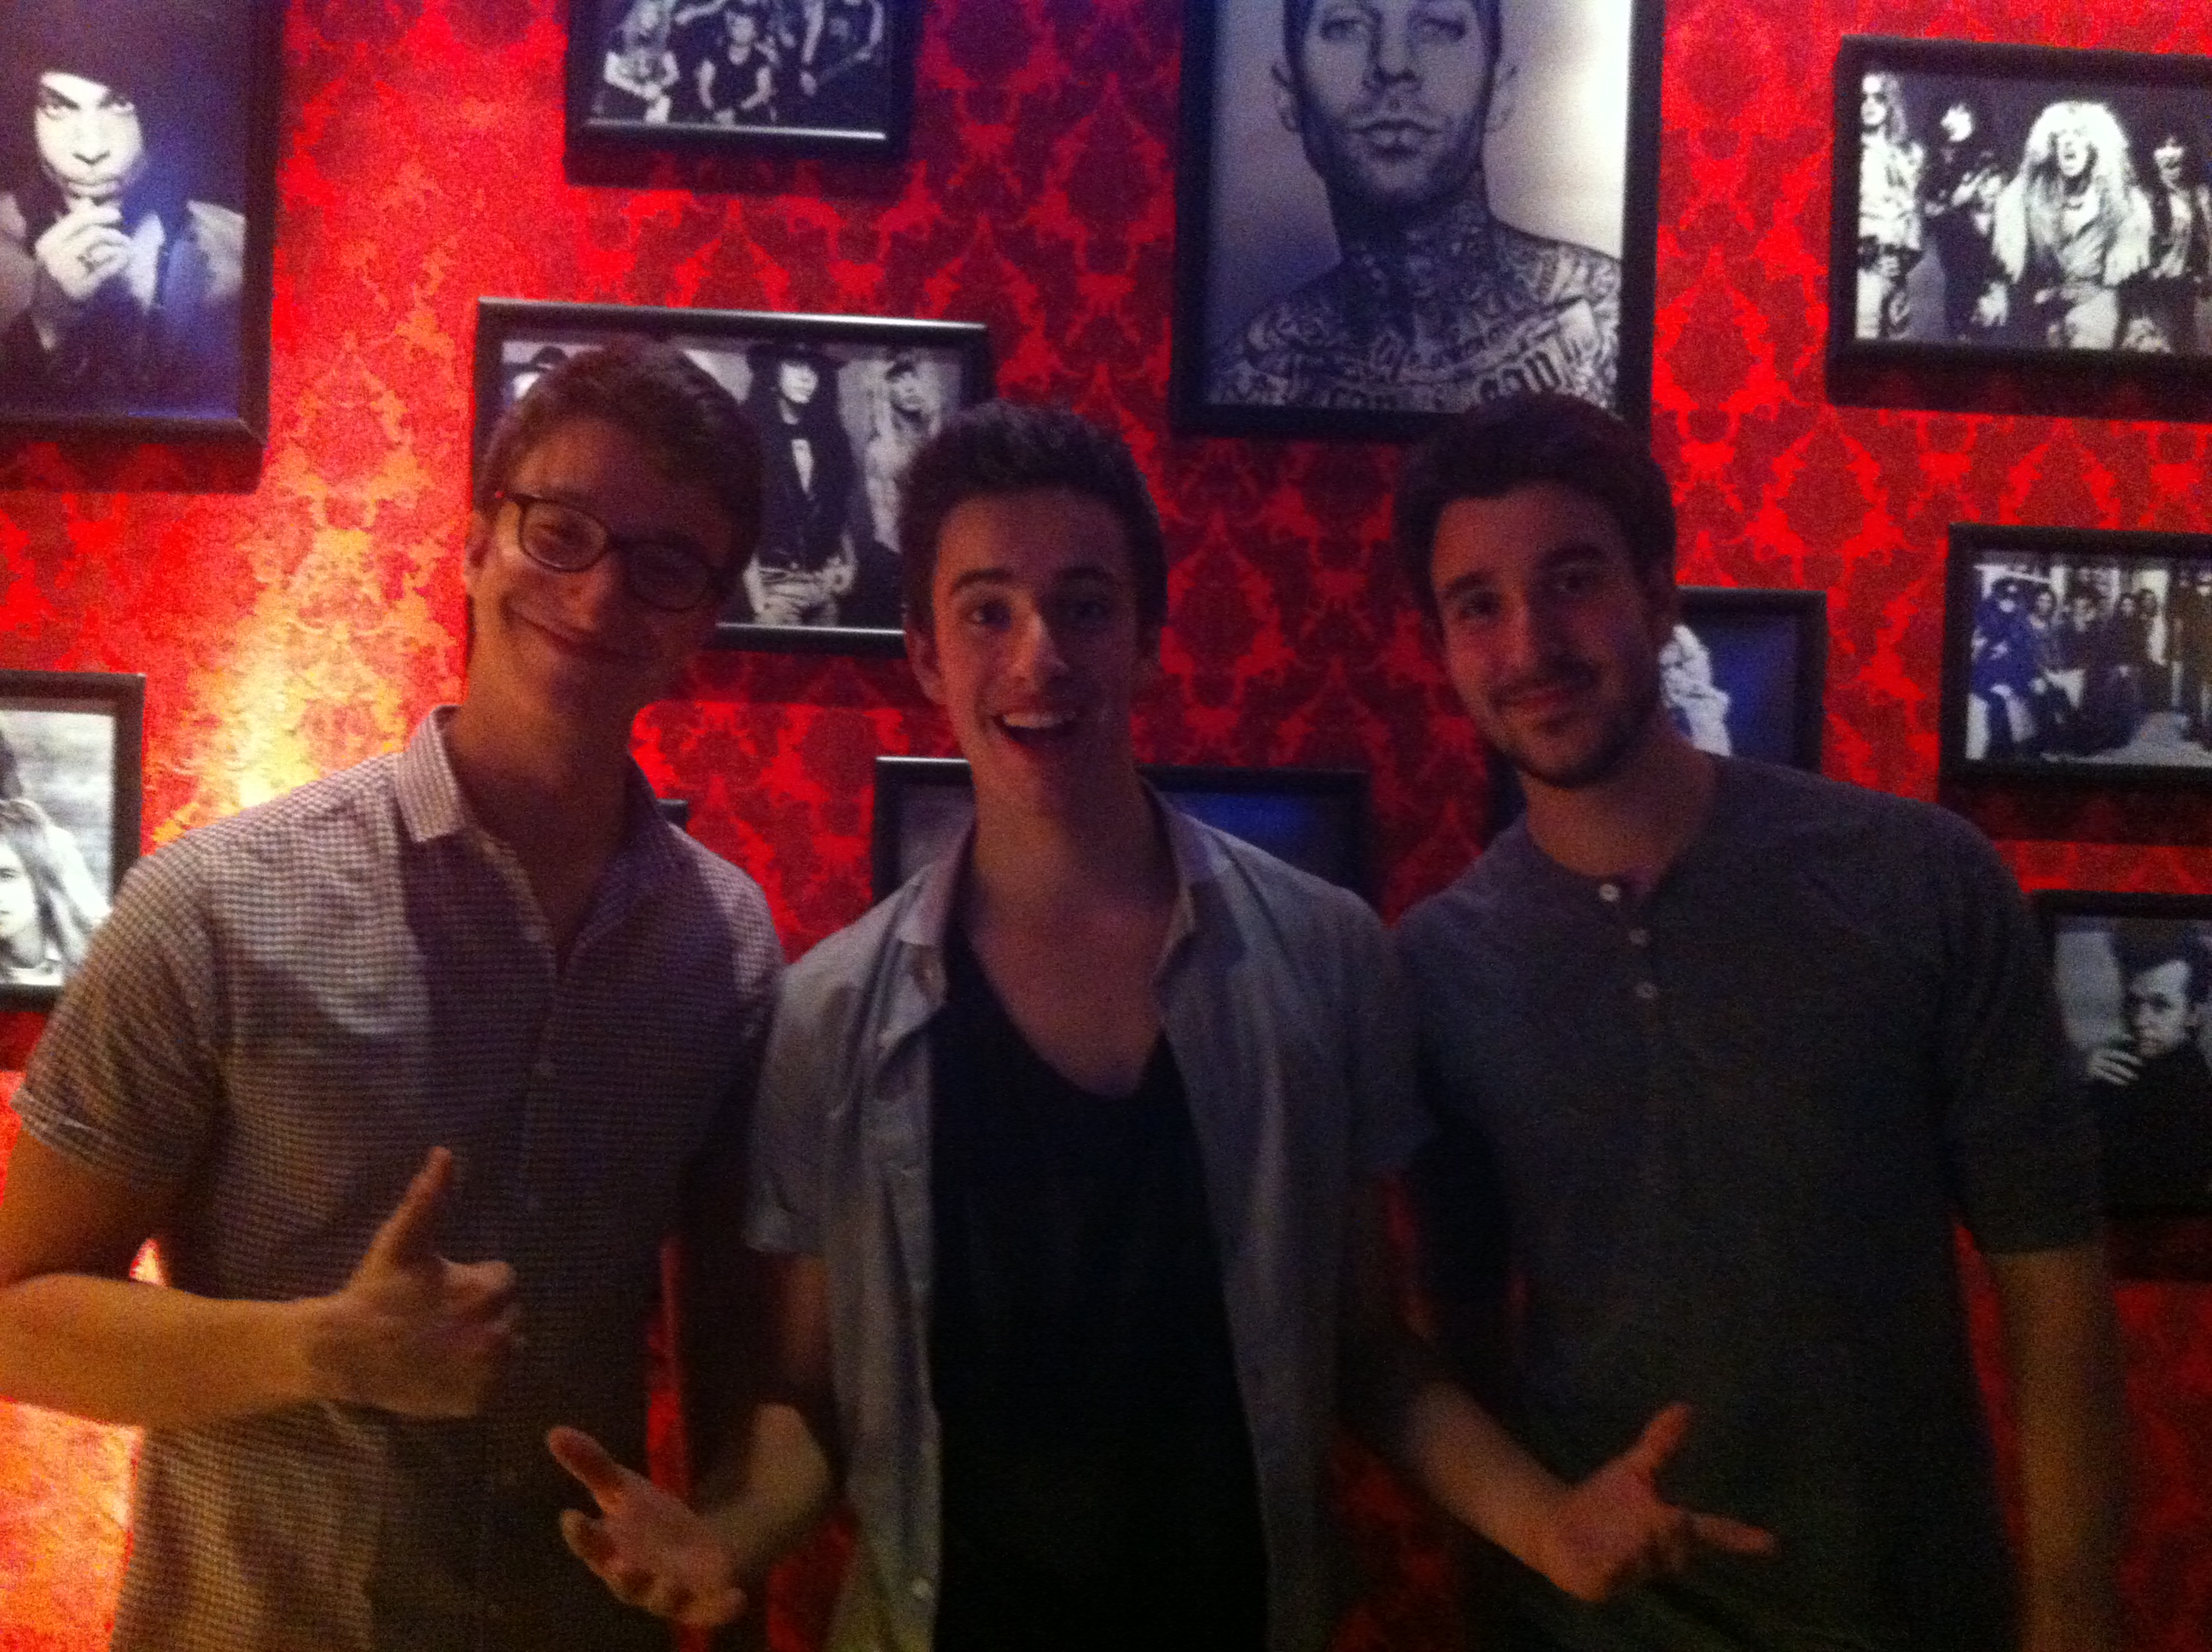 The AJR Brothers at the Emporium in Patchogue, NY!